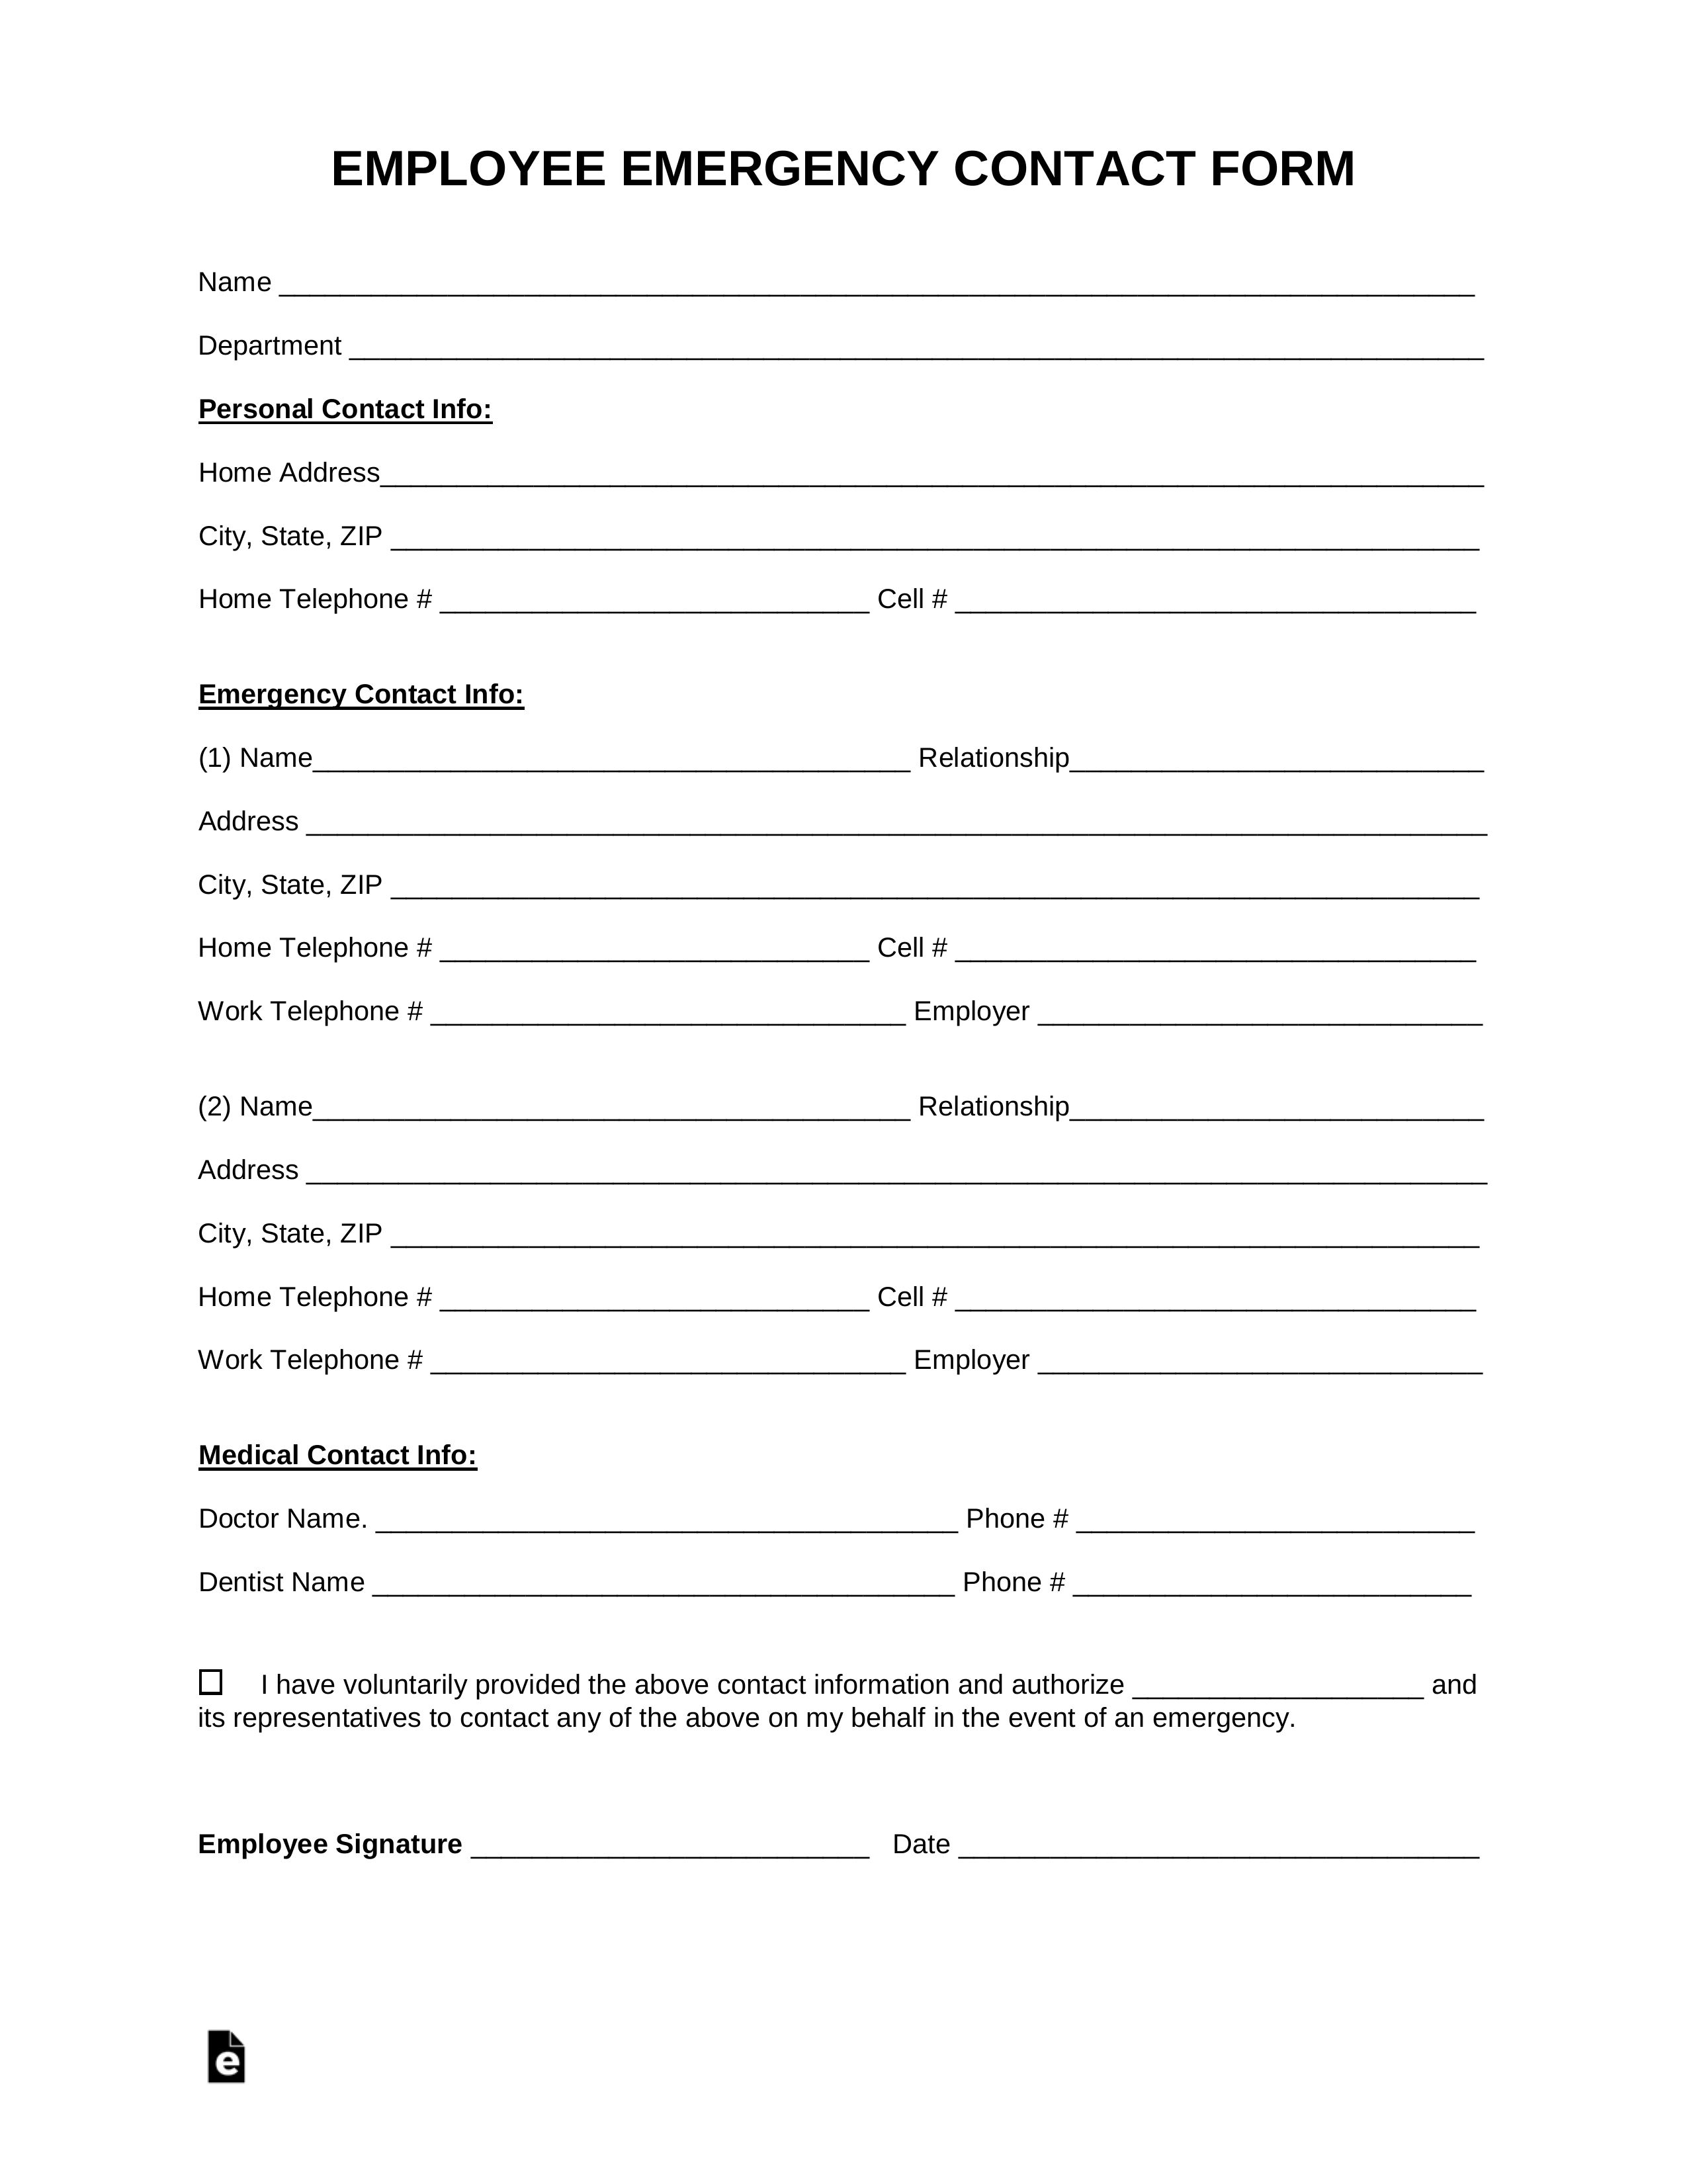 Free Employee Emergency Contact Form